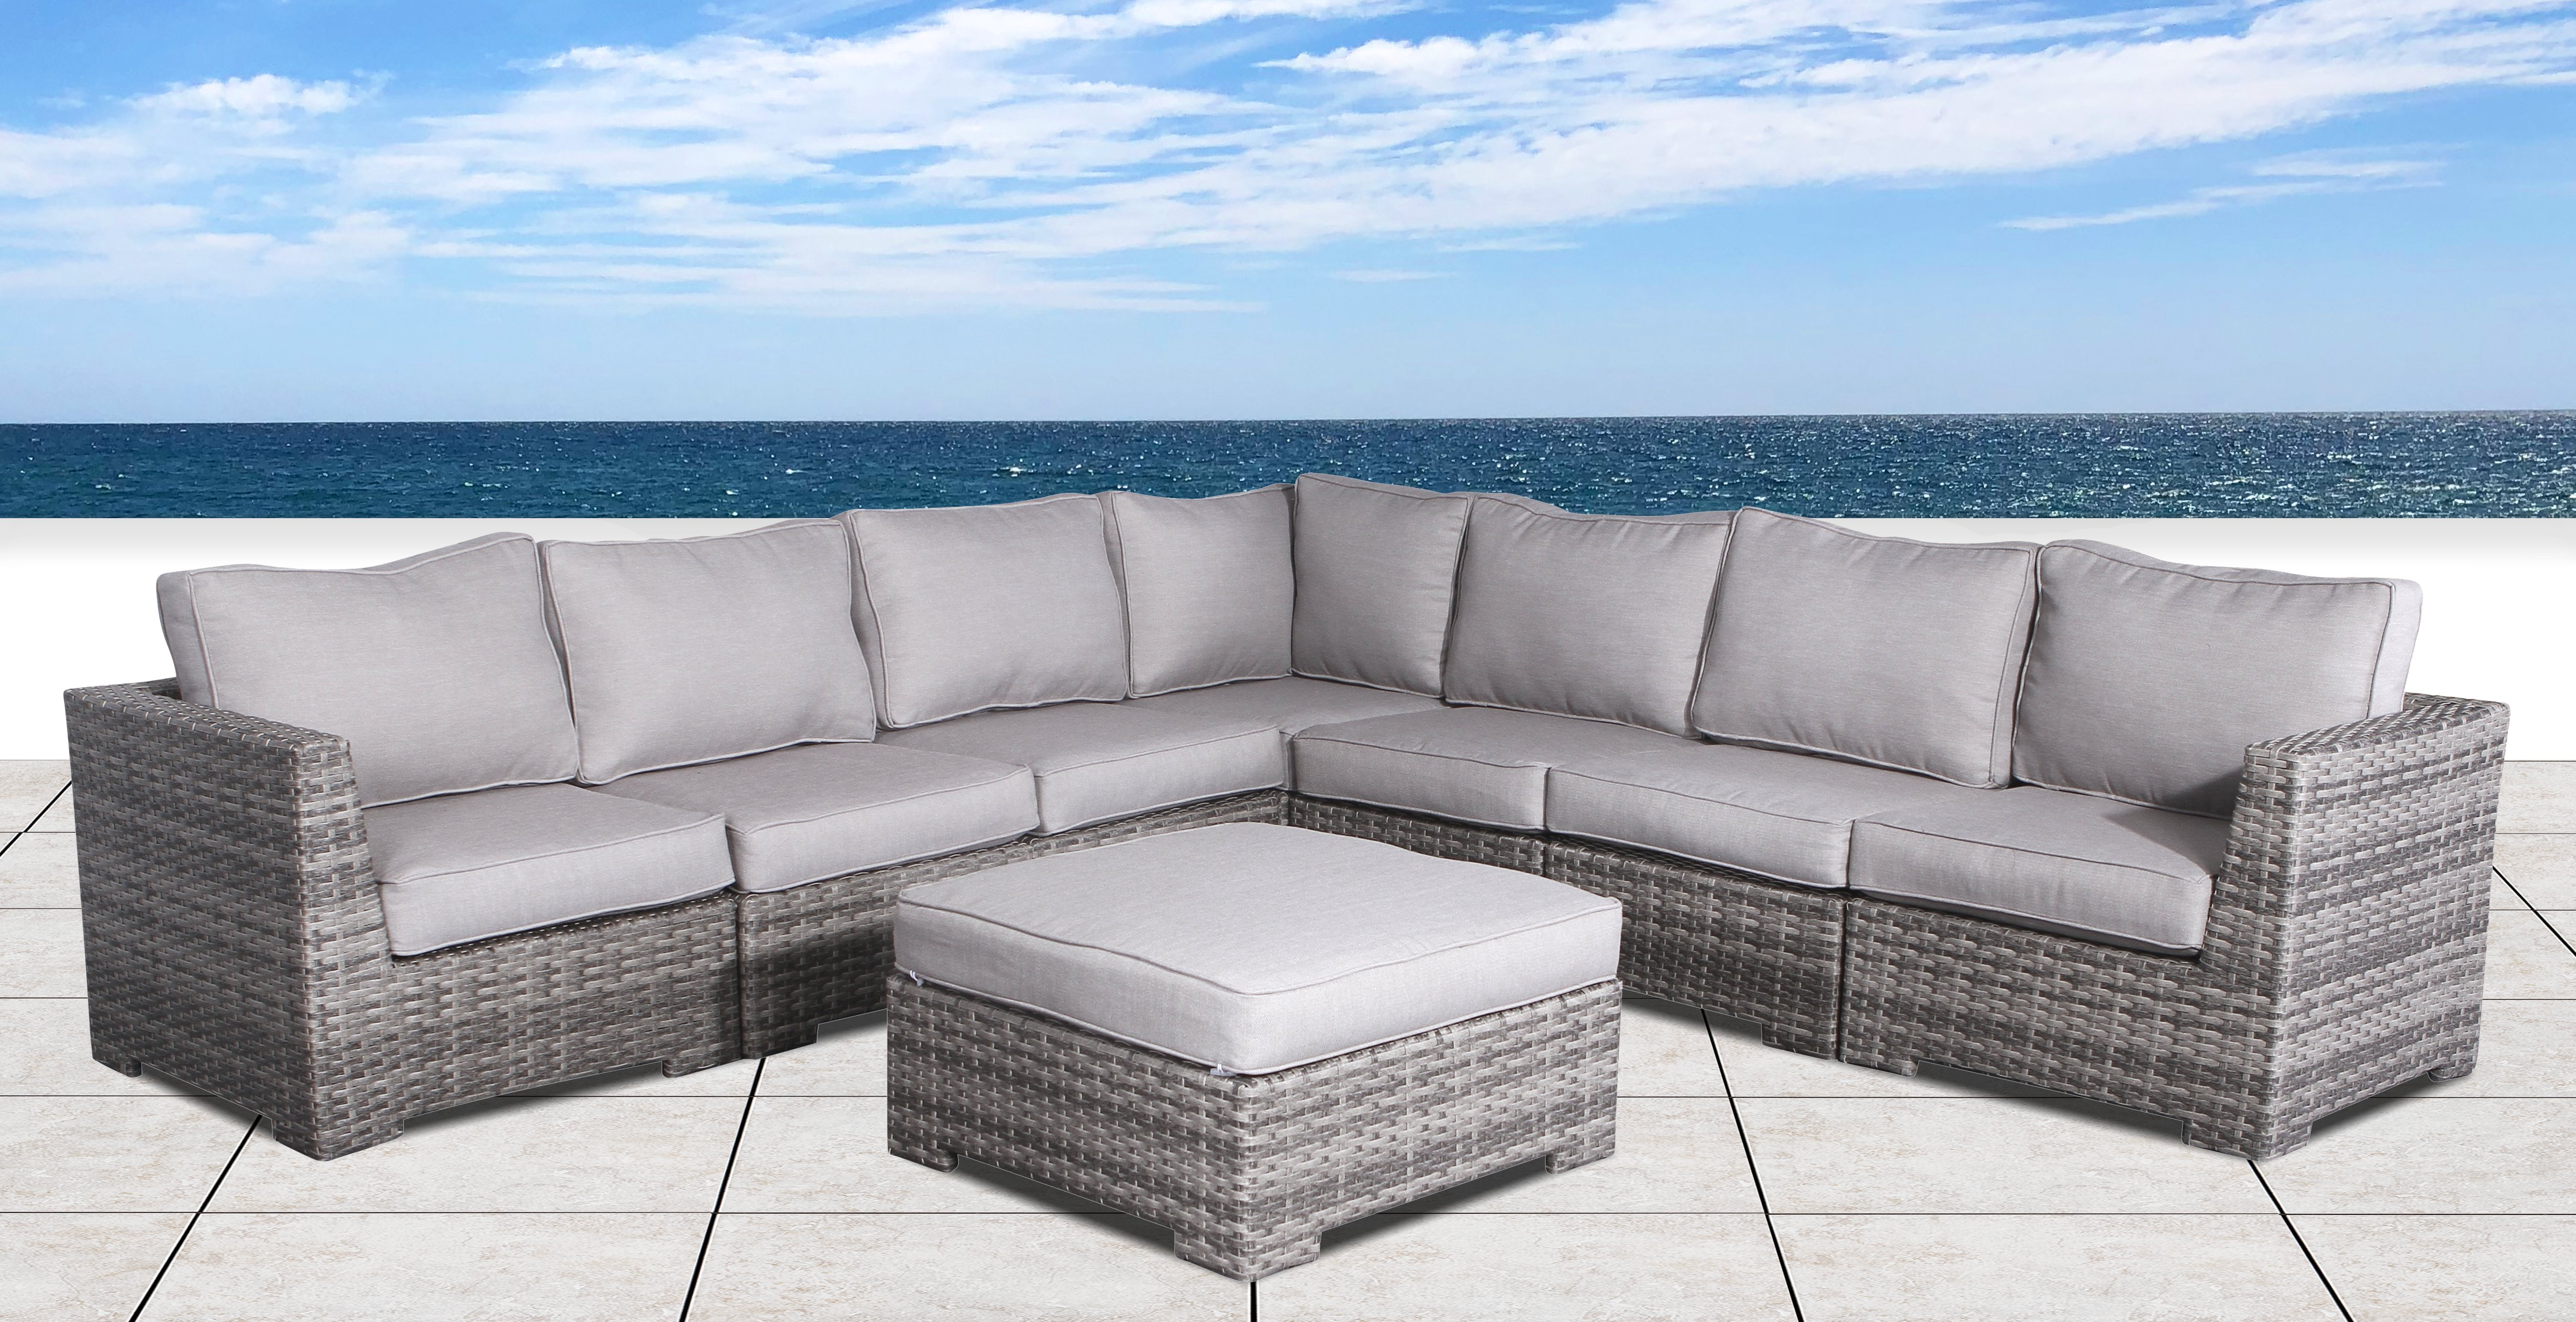 Madison Avenue Patio Sectionals With Sunbrella Cushions Intended For Most Popular Pierson Patio Sectional With Cushions (View 8 of 20)